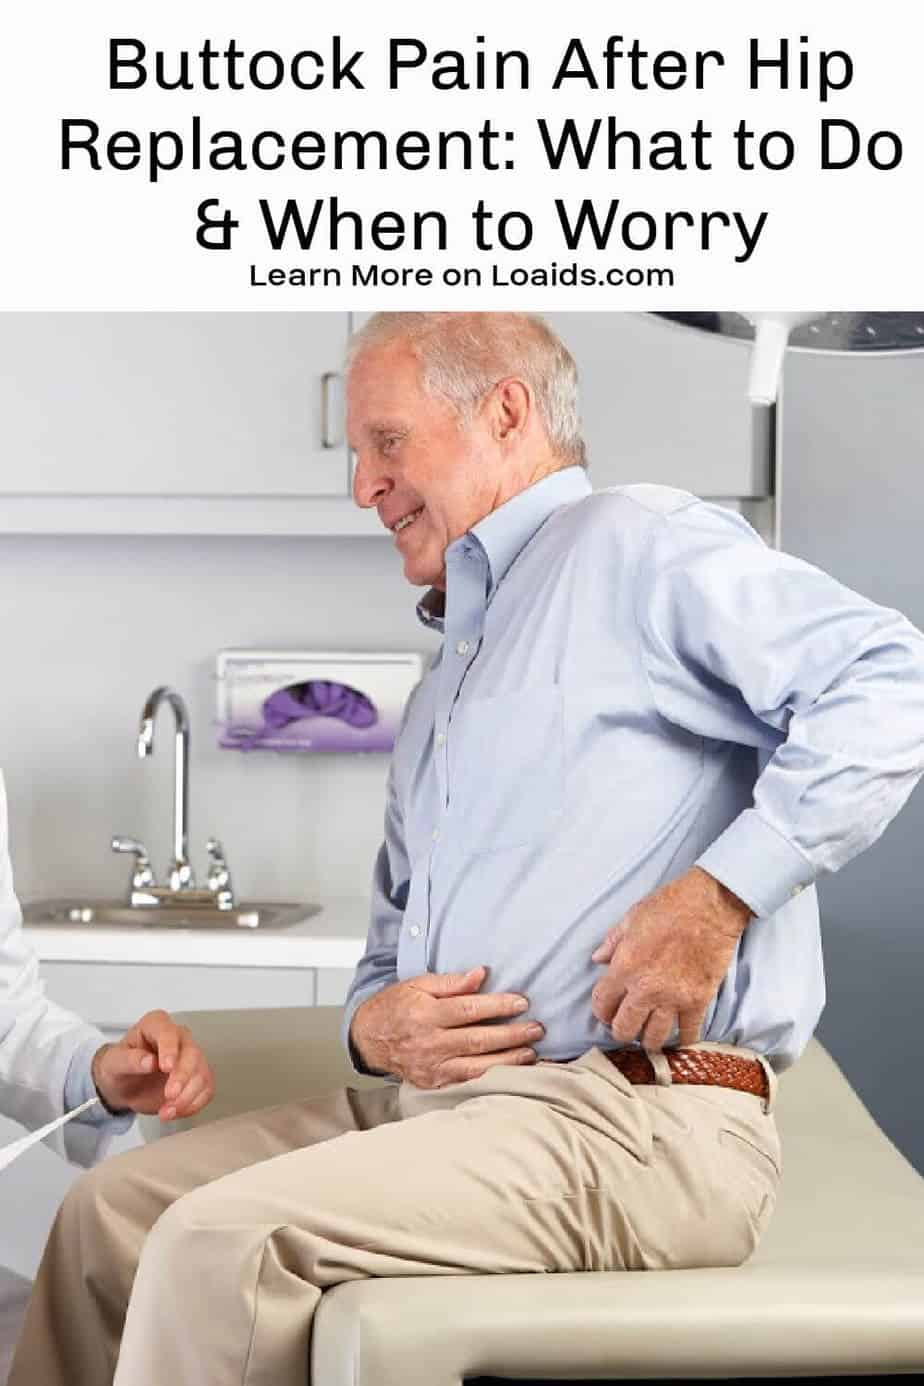 Senior man on doctors table pointing to where he has pain after hip replacement surgery.